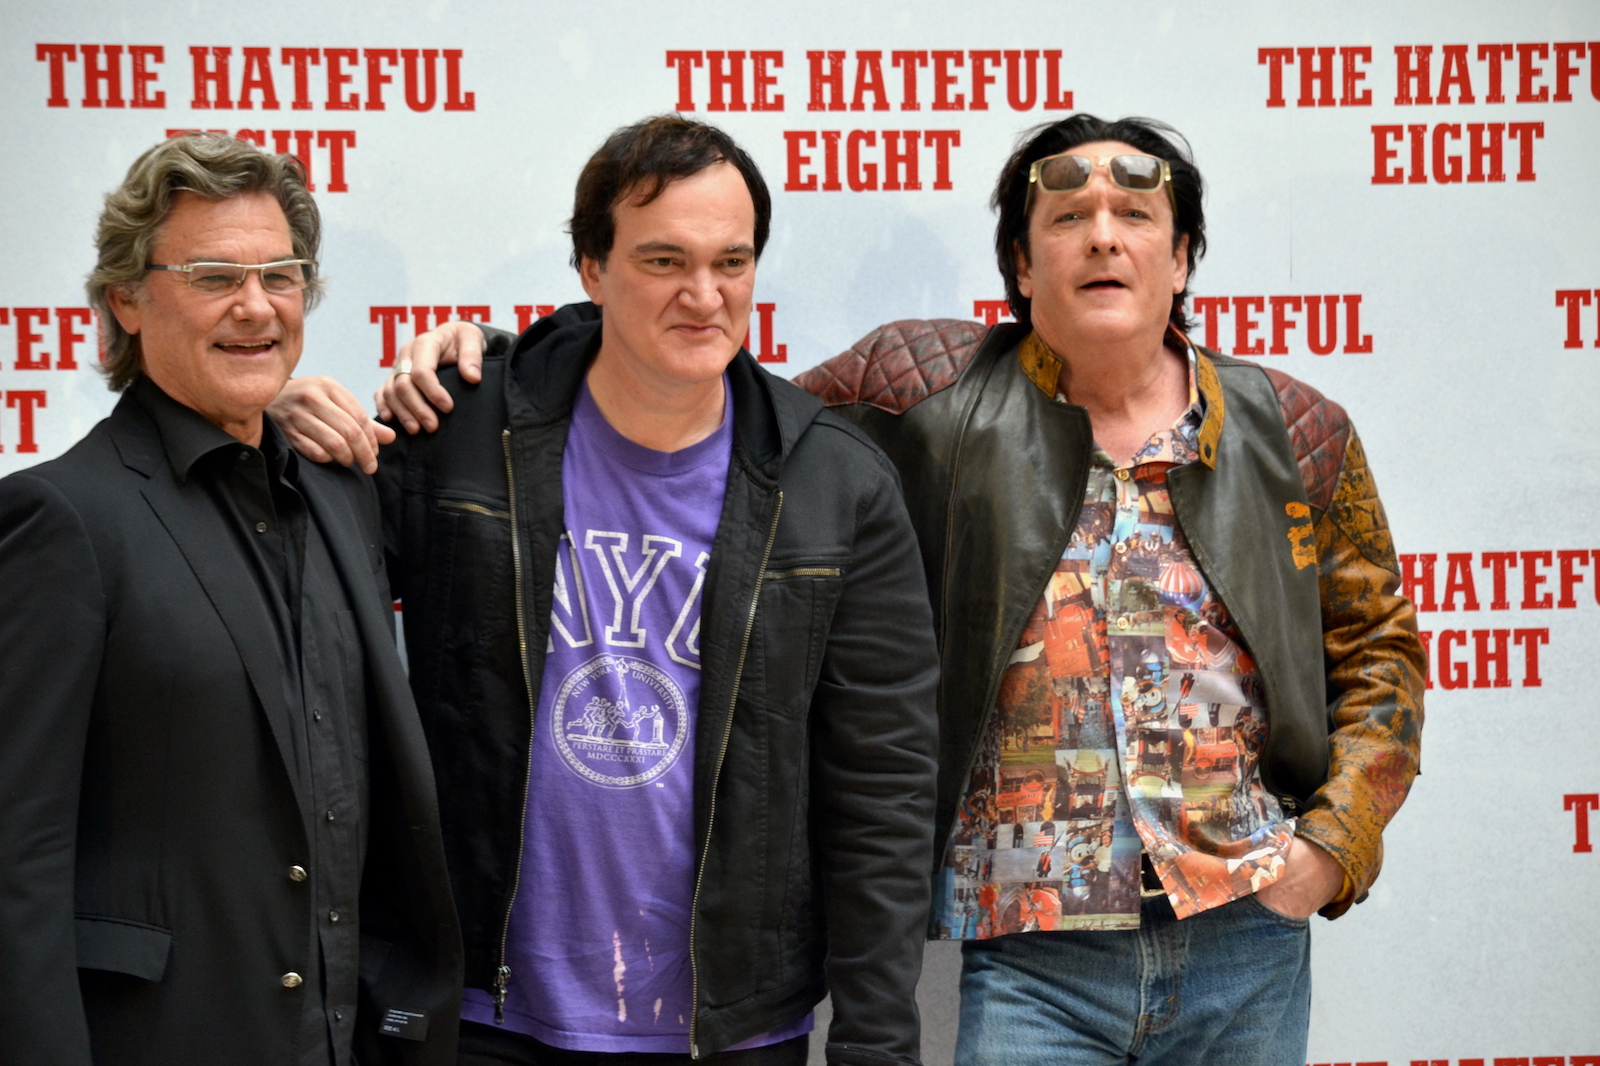 The Hateful Eight: Tarantino presenta il film a Roma con Kurt Russell e Michael Madsen